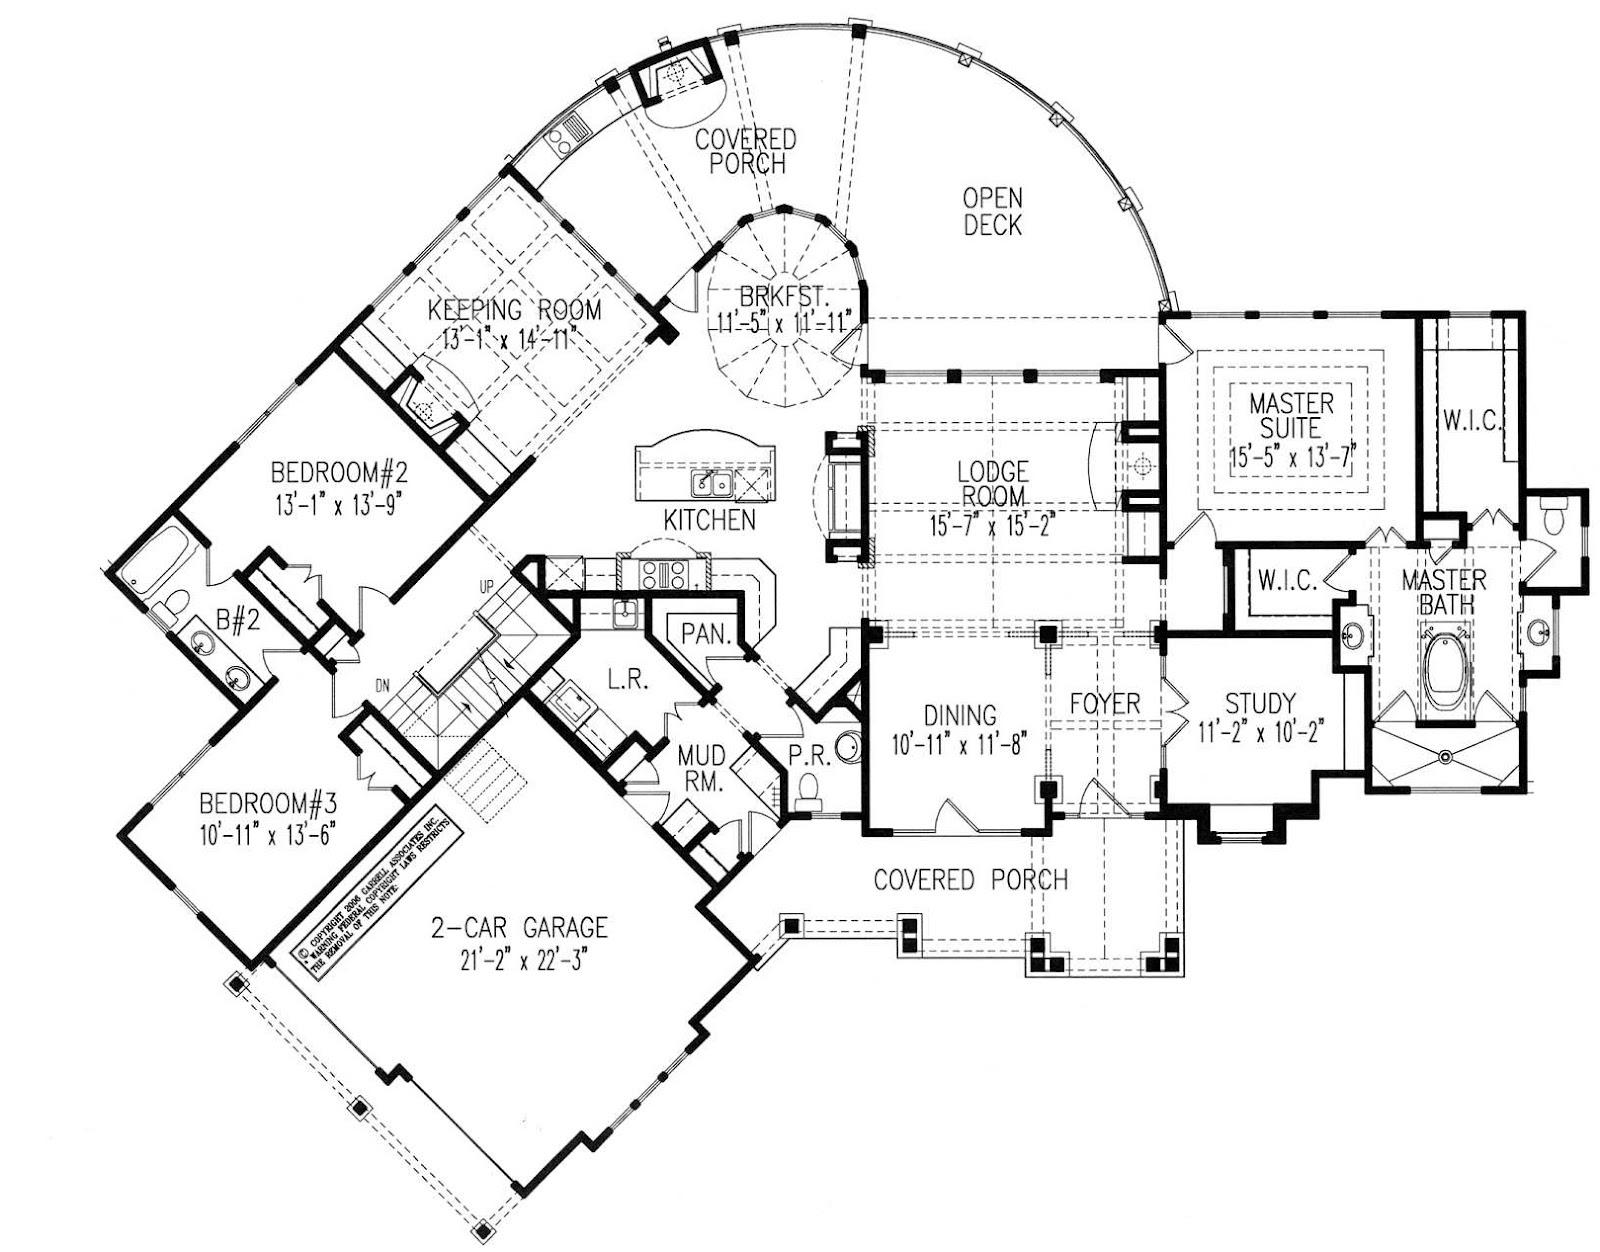 15 decorative tranquility house plan home plans